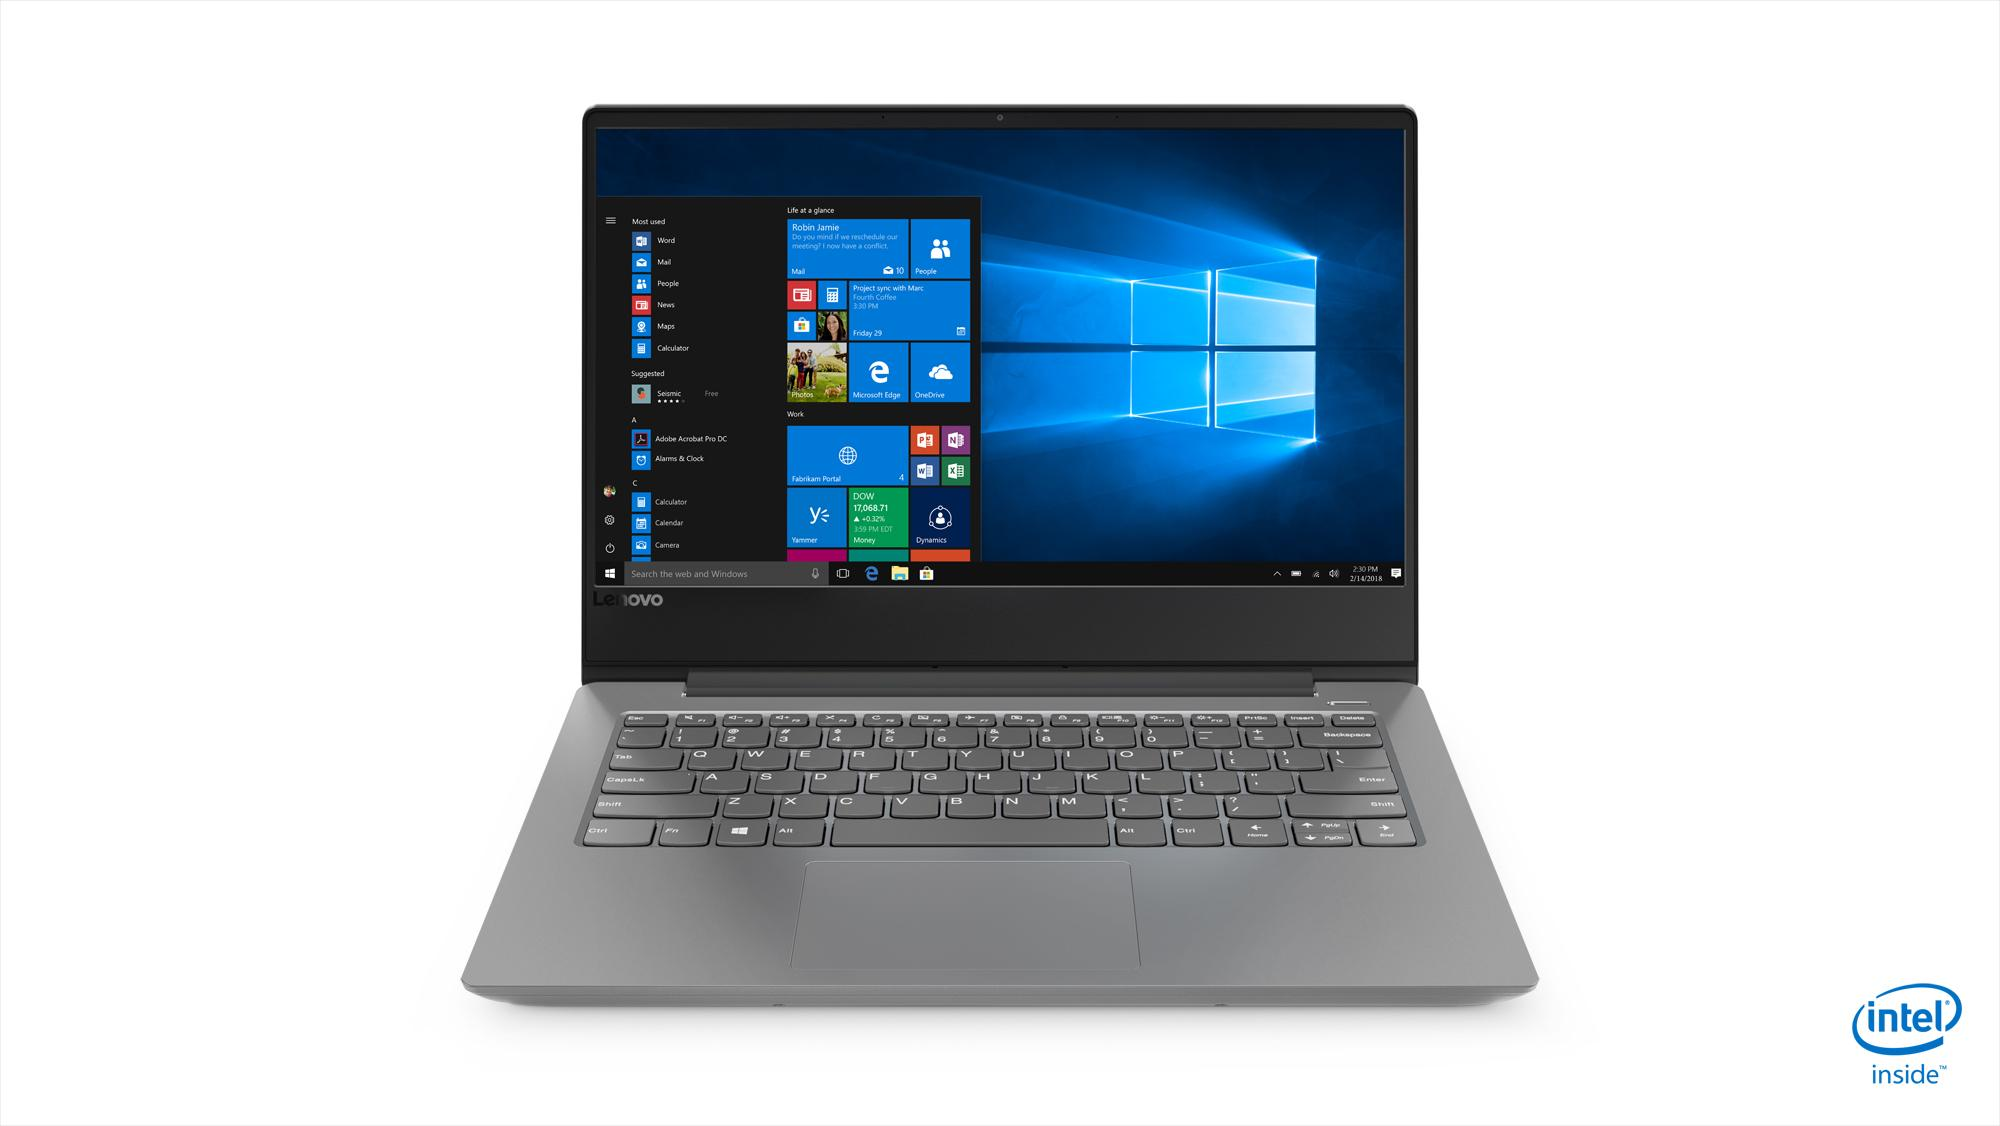 Lenovo Ultraslim Ideapad 330S 14 i5-8250U 8GB Platinum Grey (81F4019XSB)